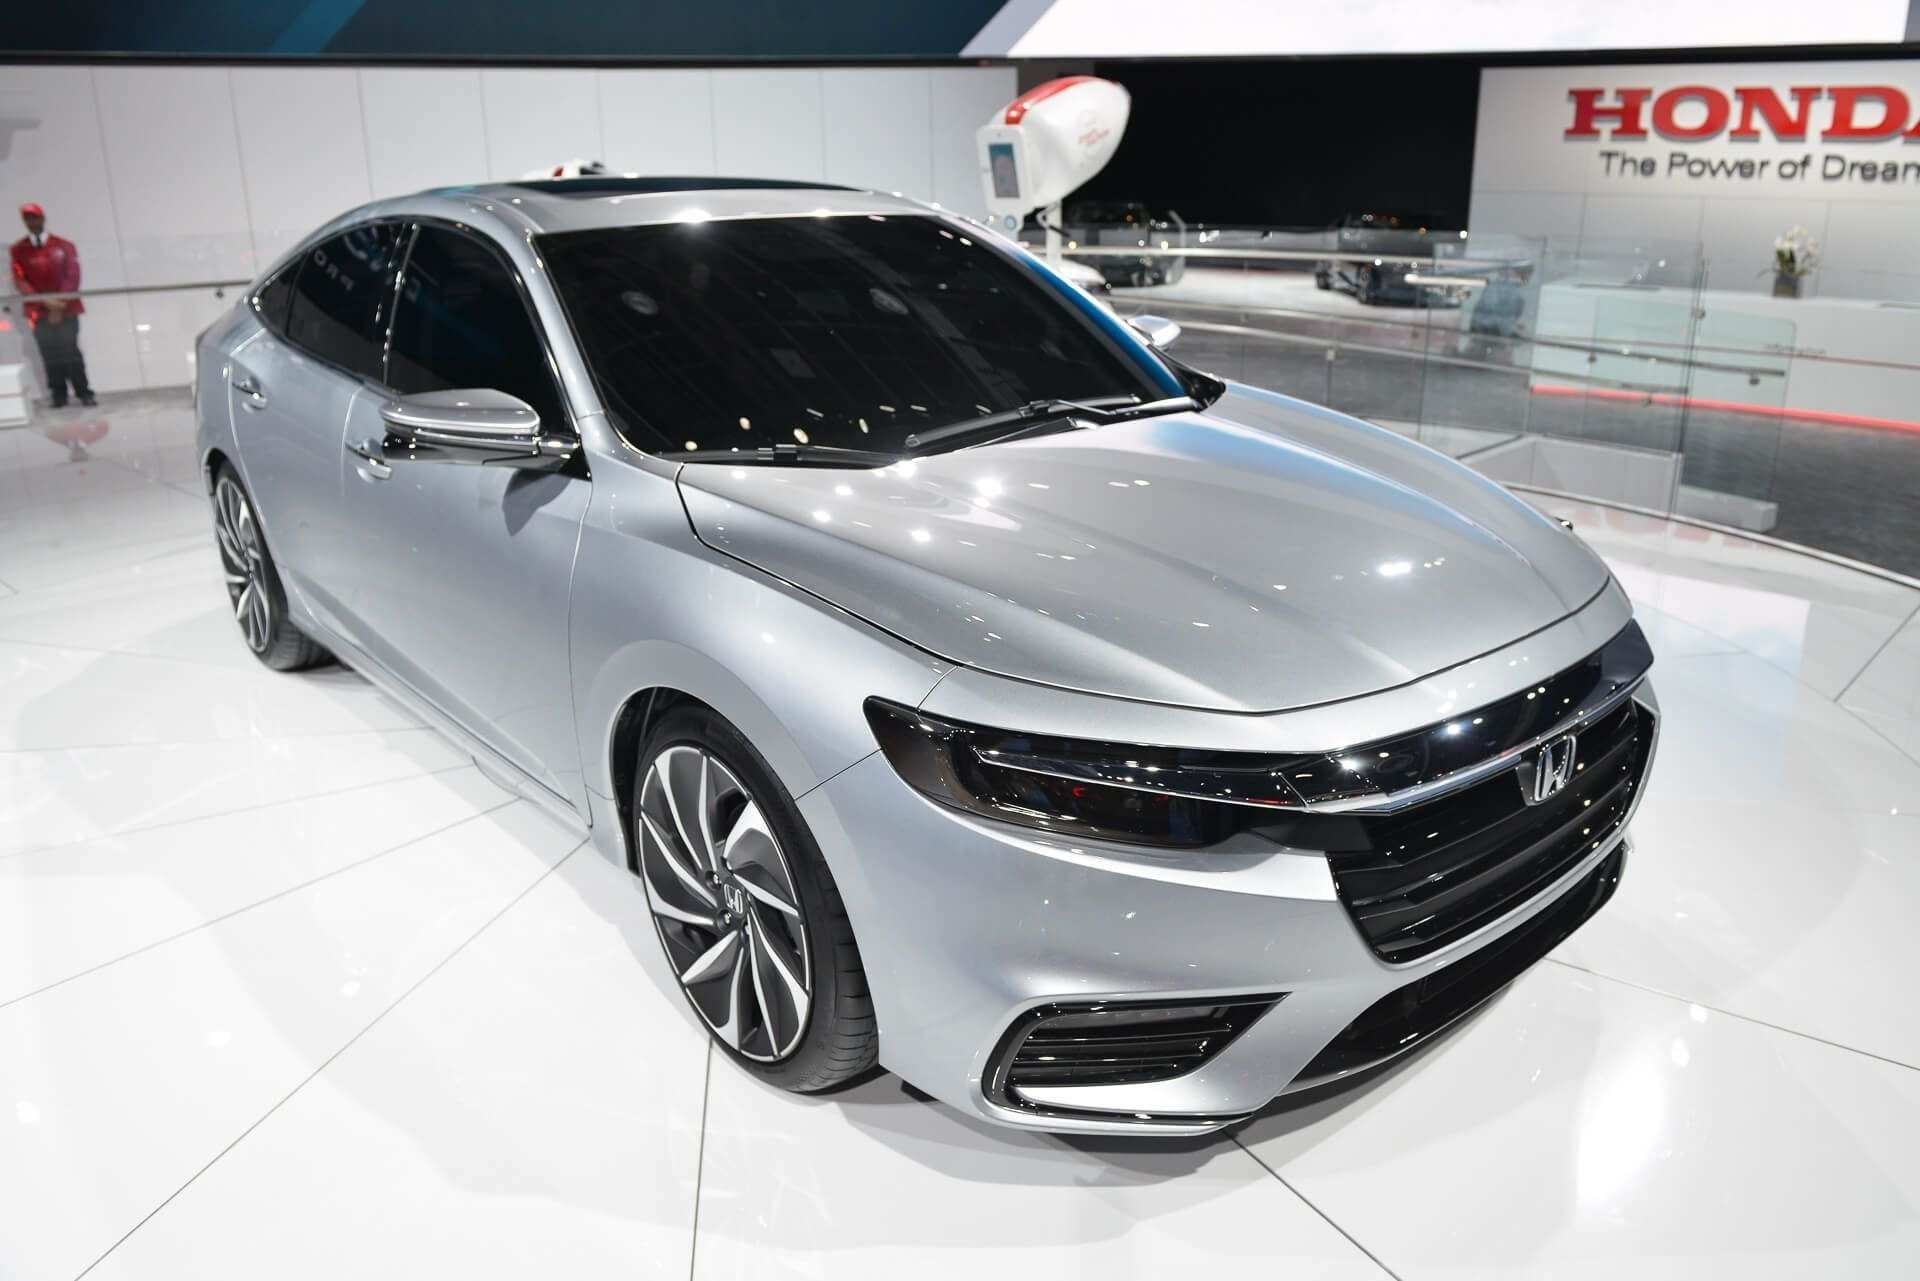 73 Concept of Honda Civic 2020 Concept Redesign and Concept by Honda Civic 2020 Concept